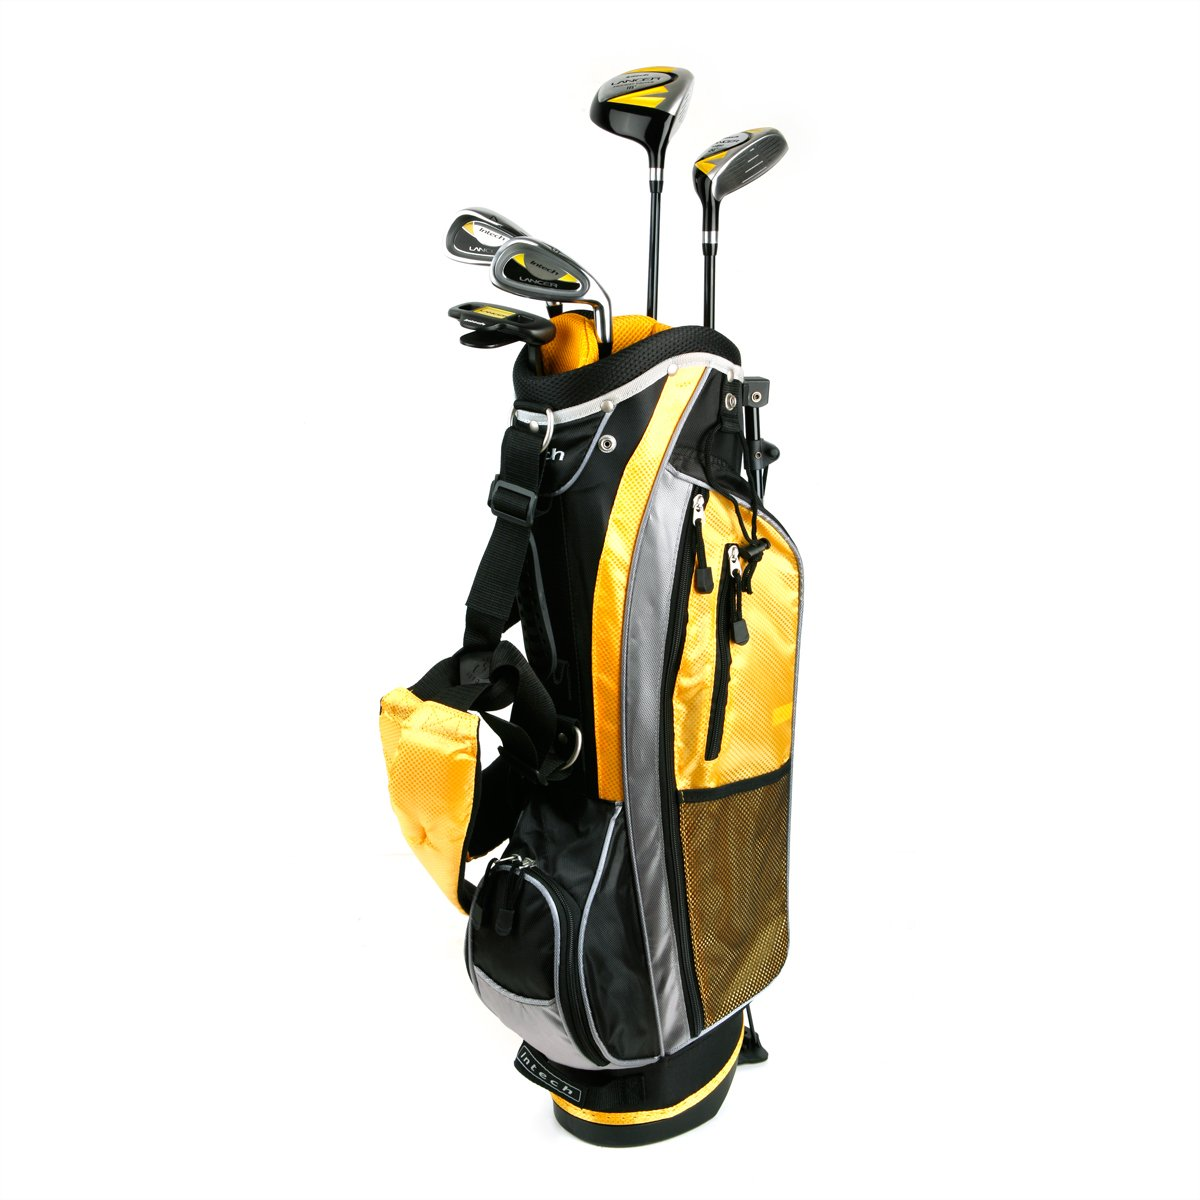 Intech Lancer Junior Golf Set, (Right-Handed, Age 4 to 7, 17.5 degree Driver, 4/5 Hybrid Iron, Wide Sole 7 and 9 irons, Junior Putter, Yellow, Deluxe Stand Bag) by Intech (Image #1)